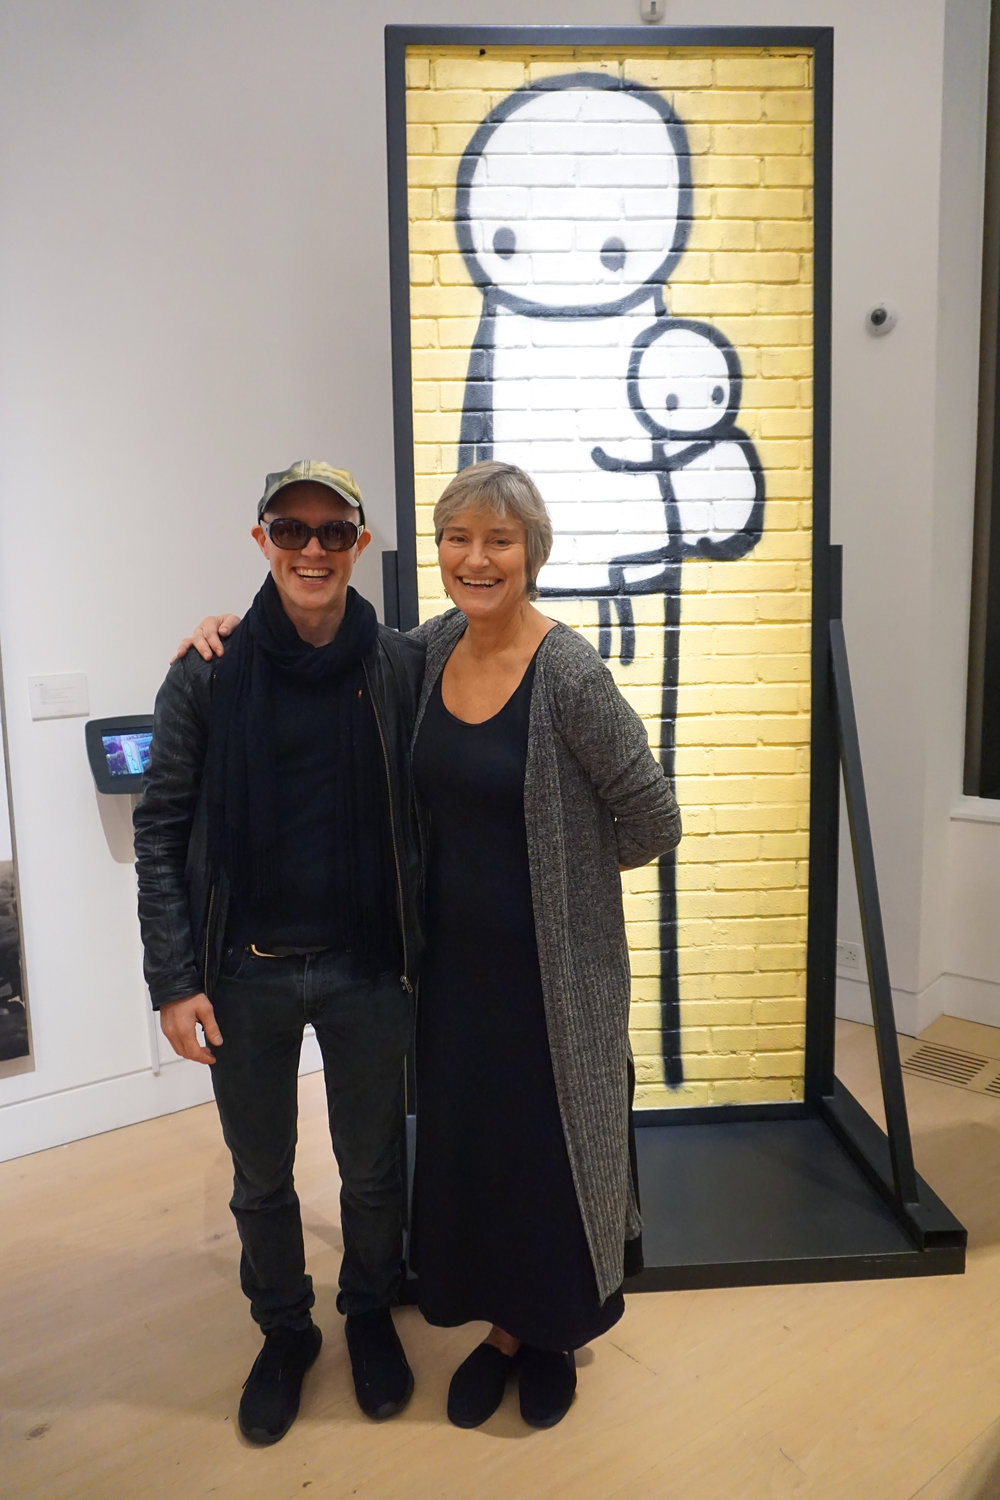 Stik and Rachel Pepper from ARTification at Phillips auction (photo LDNgraffiti).